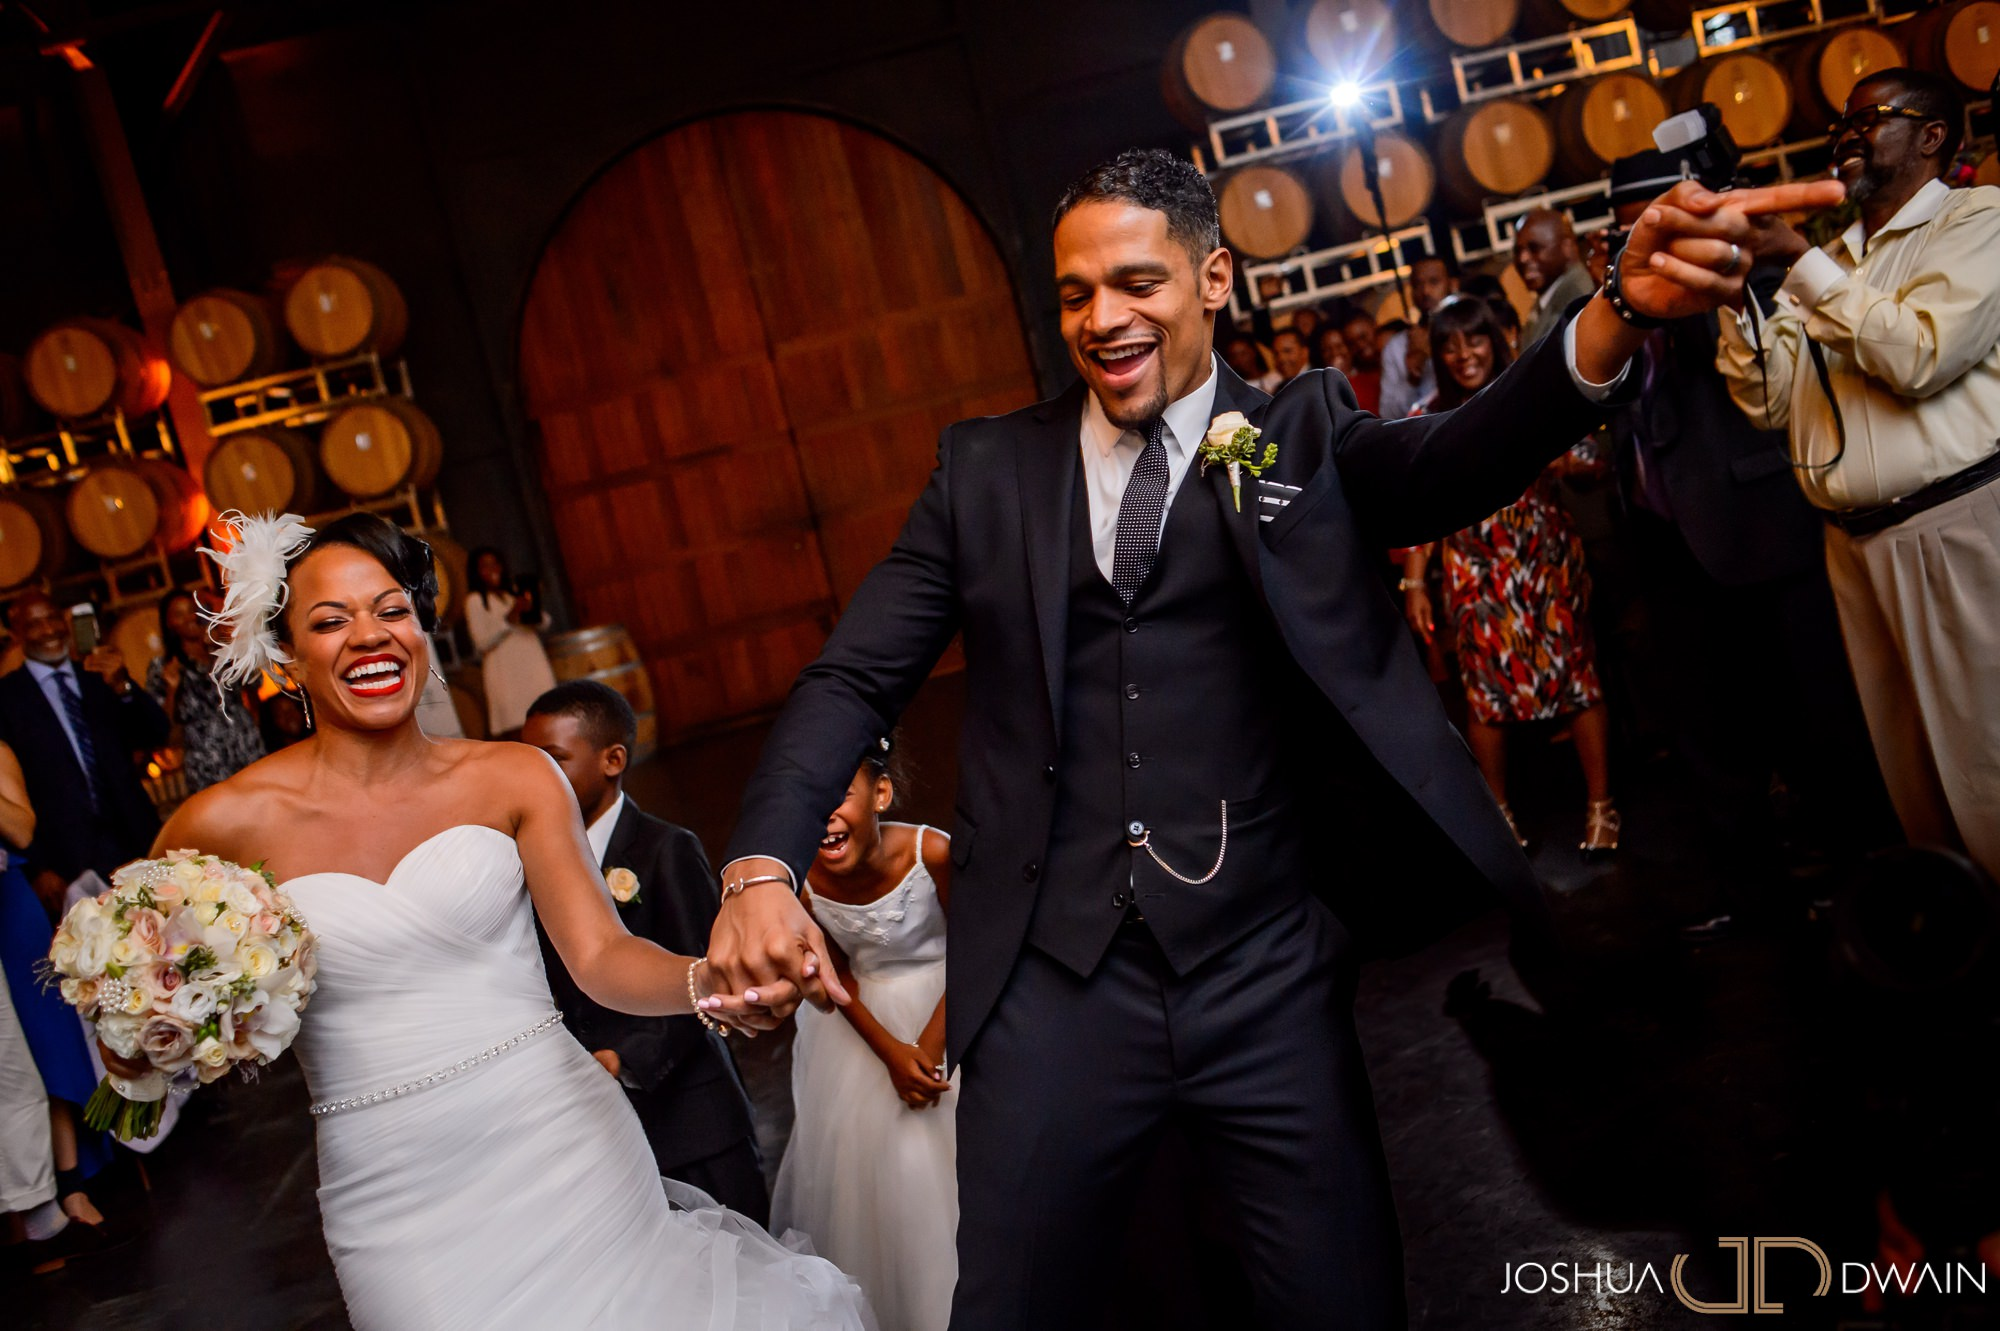 briana-donovan-29-leal-vineyards-winery-wedding-san-francisico-wedding-photographer-joshua-dwain